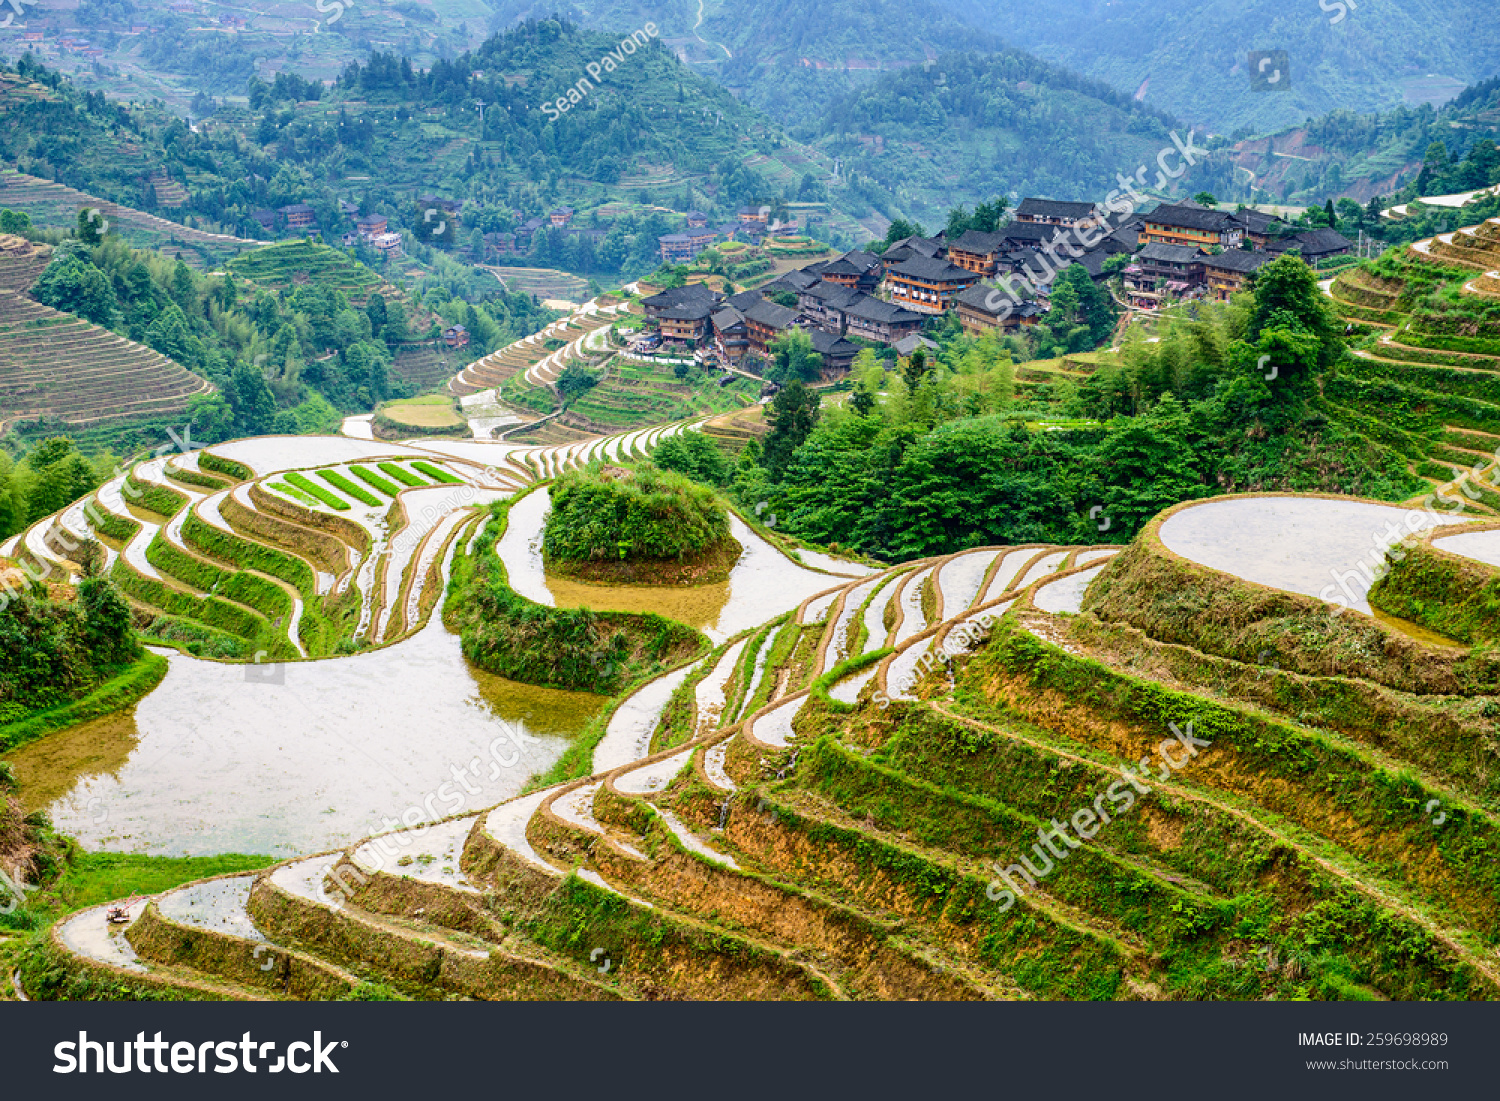 Yaoshan Mountain Guilin China hillside rice terraces landscape